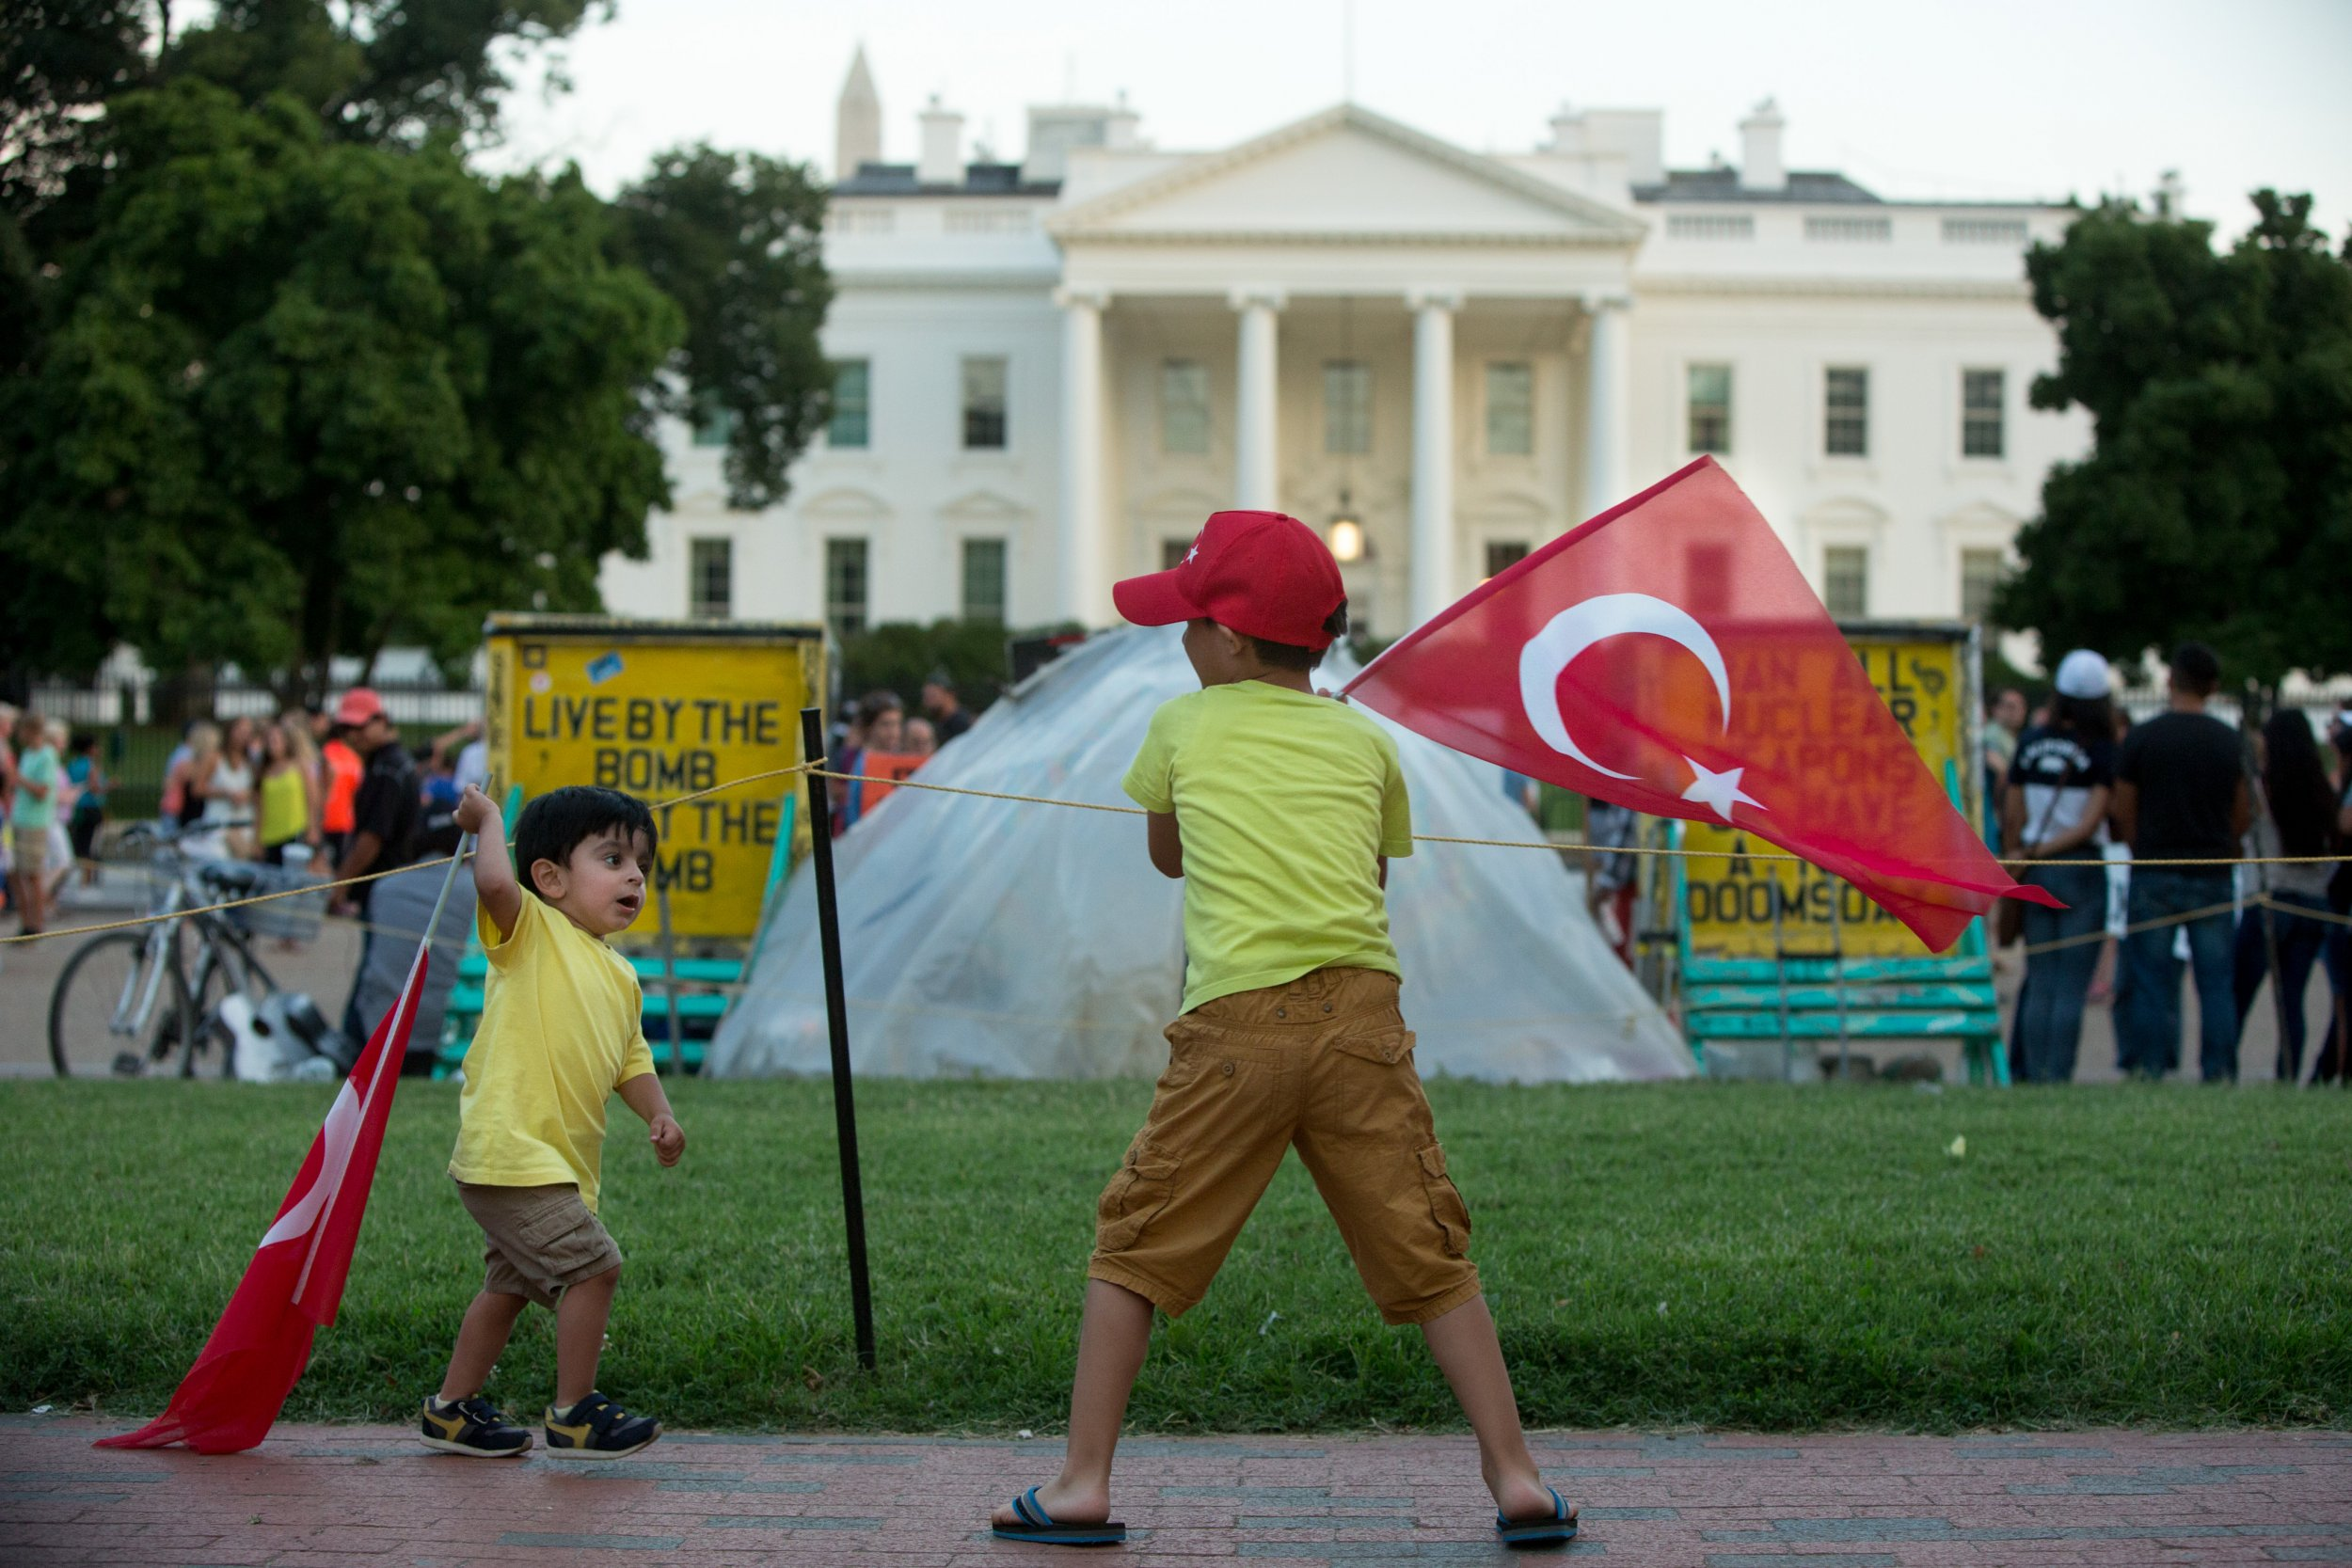 Turkey supporters outside White House